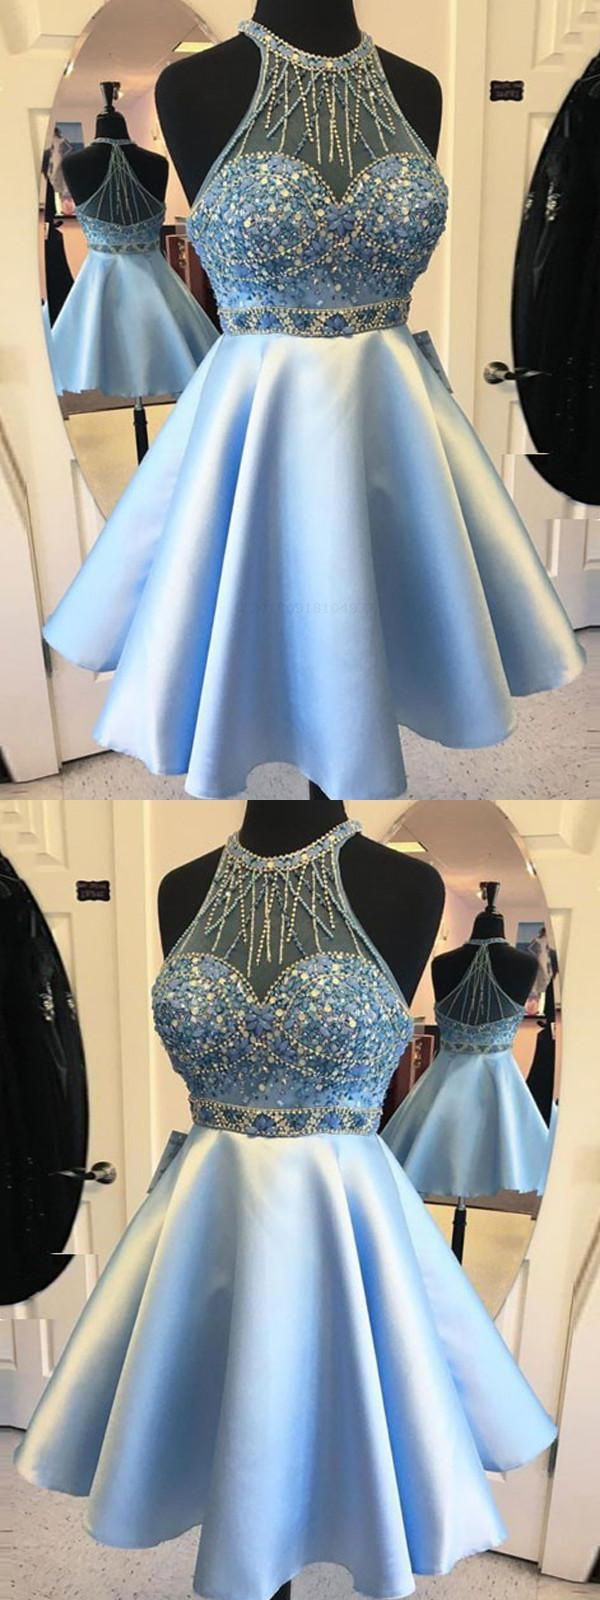 Customized suitable short homecoming dresses blue homecoming